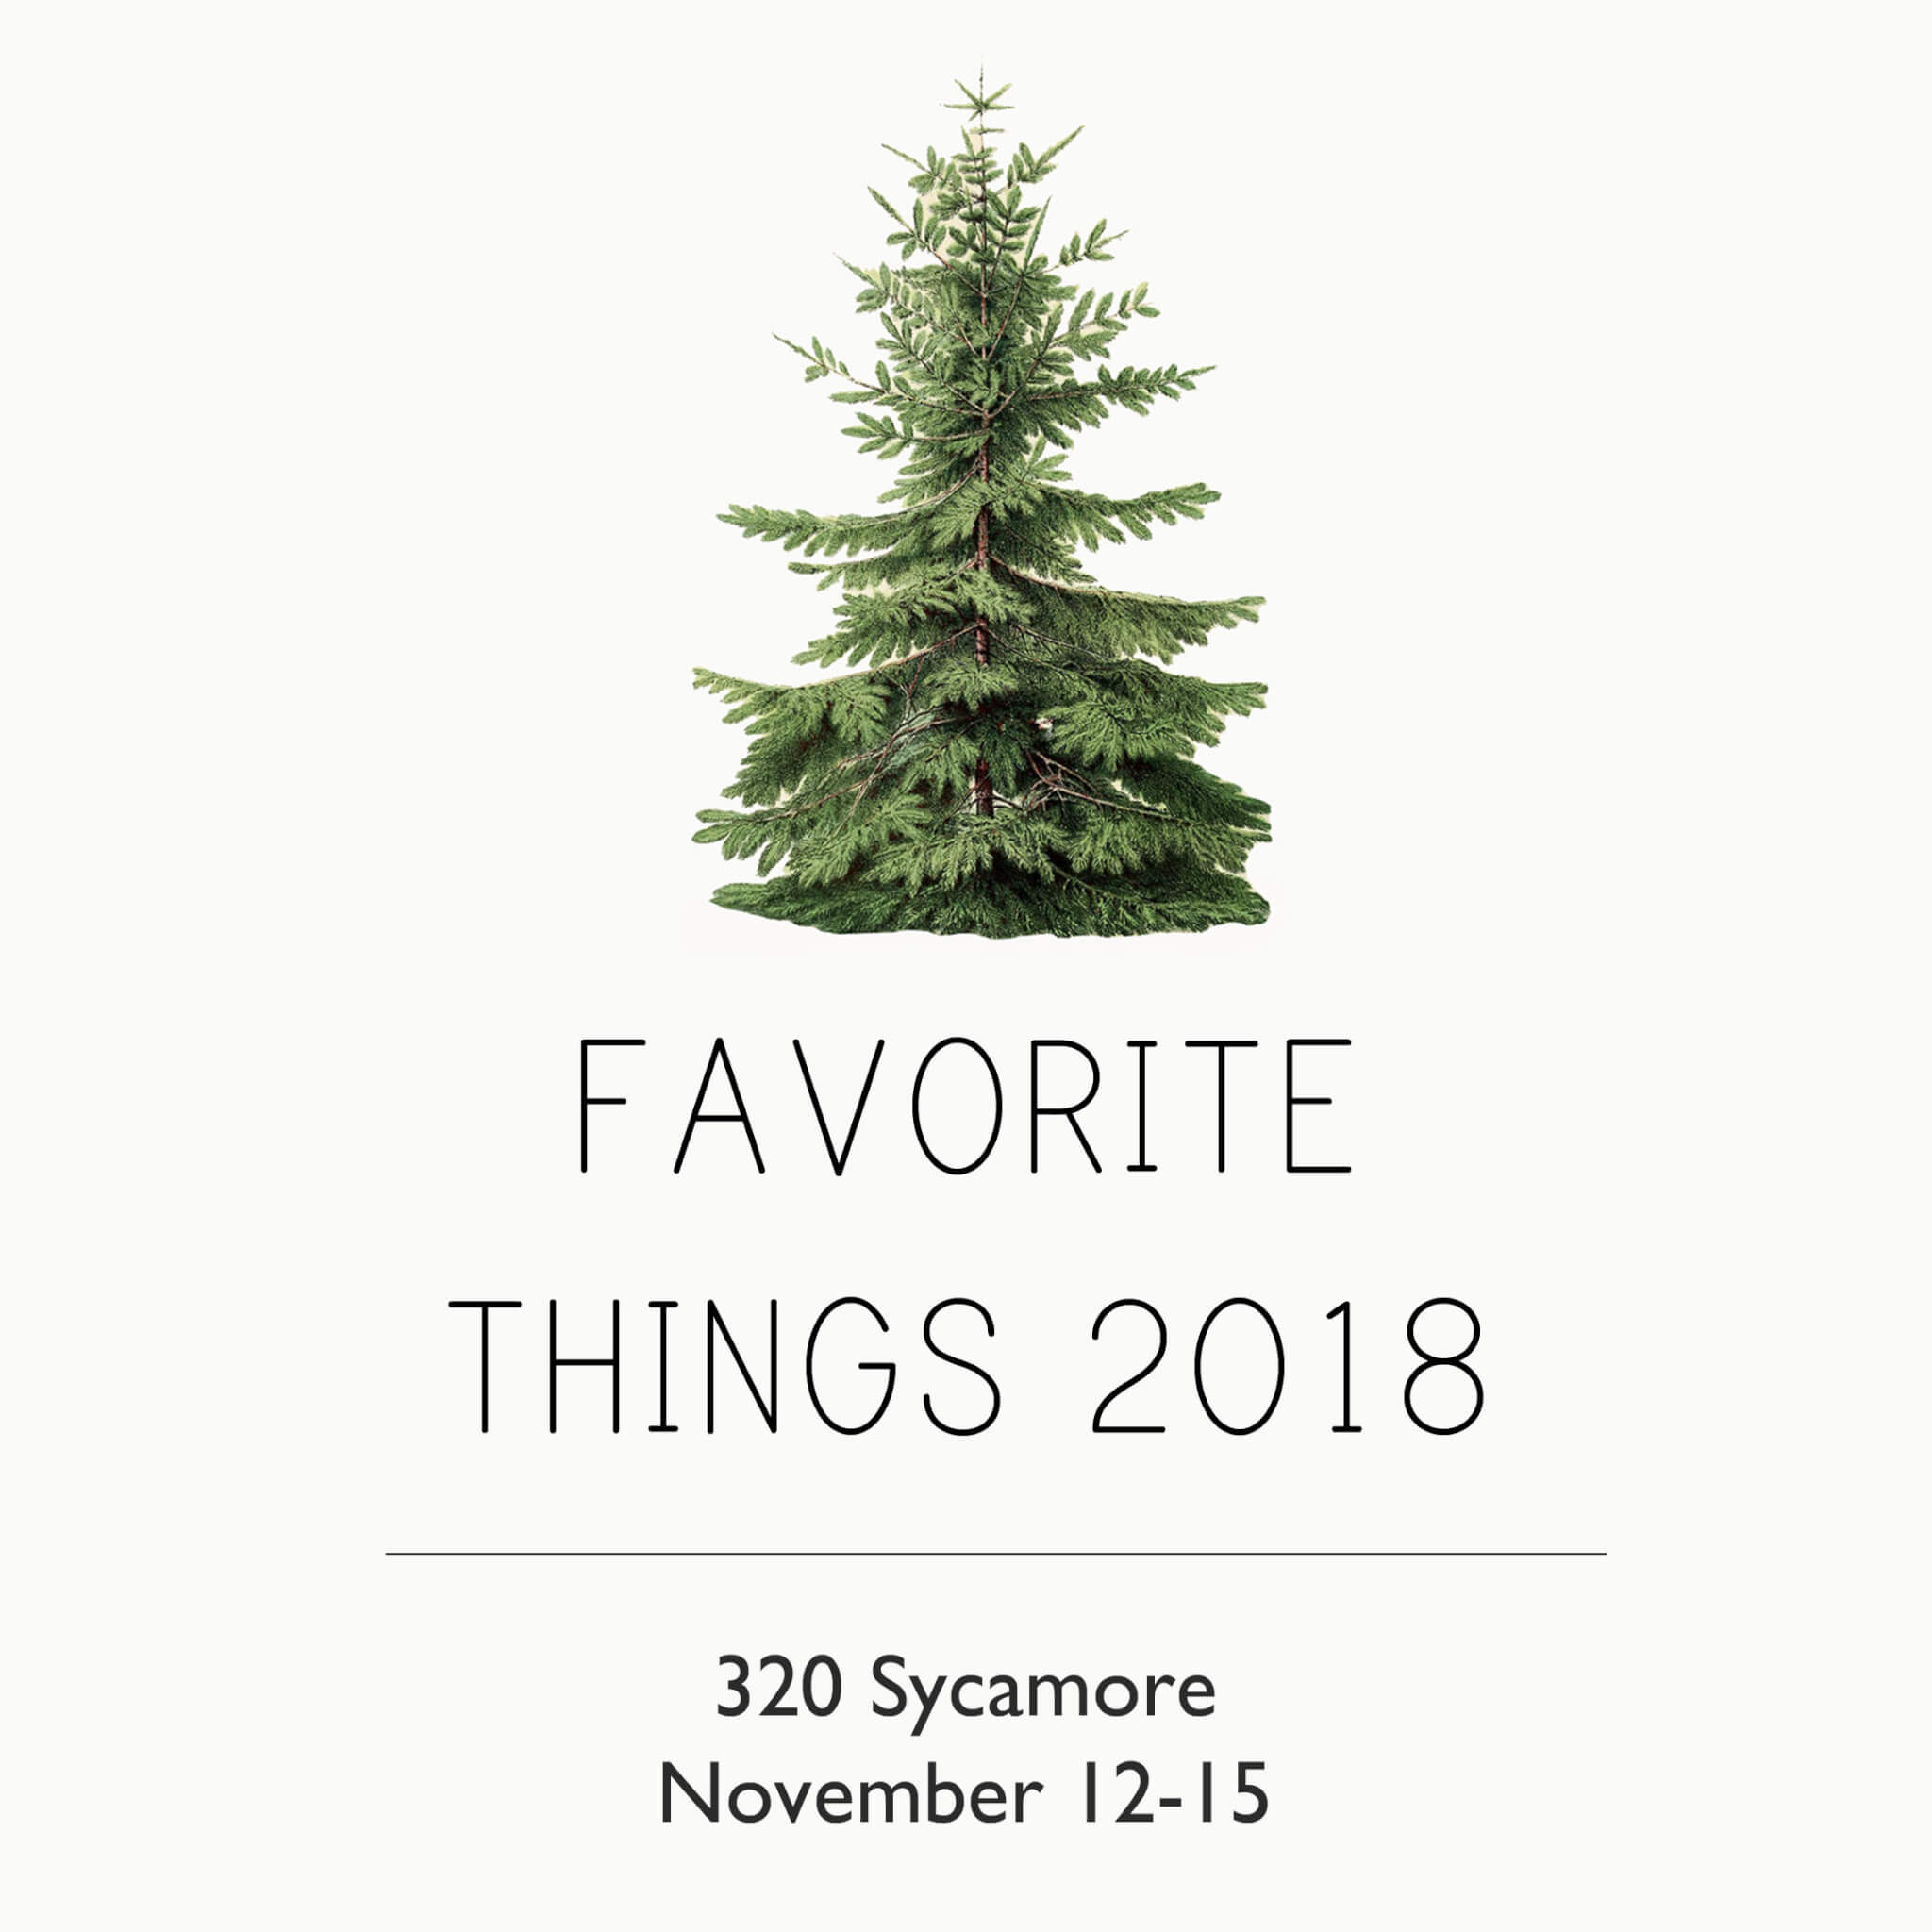 My favorite things 2018